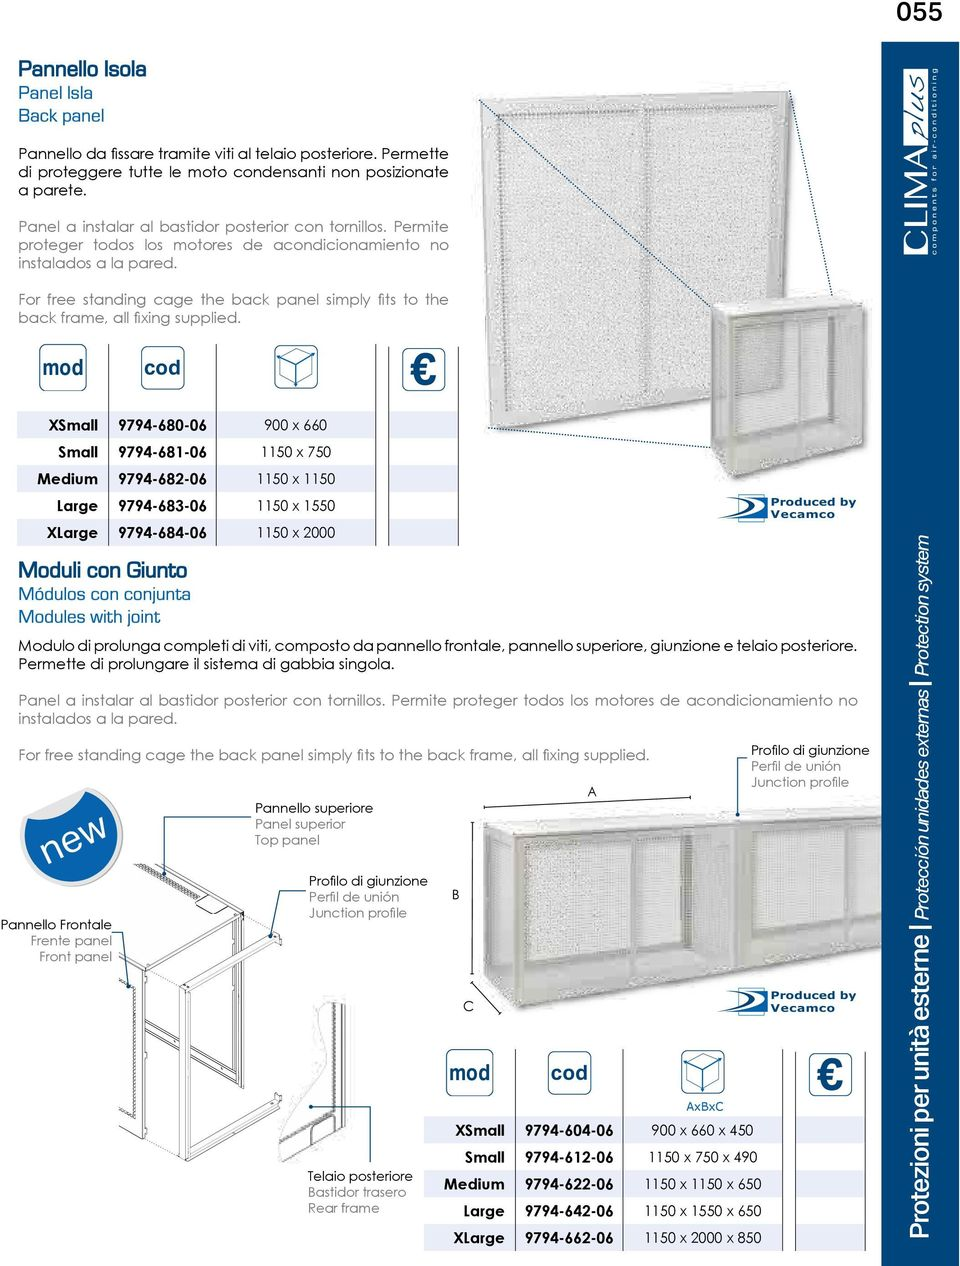 For free standing cage the back panel simply fits to the back frame, all fixing supplied.